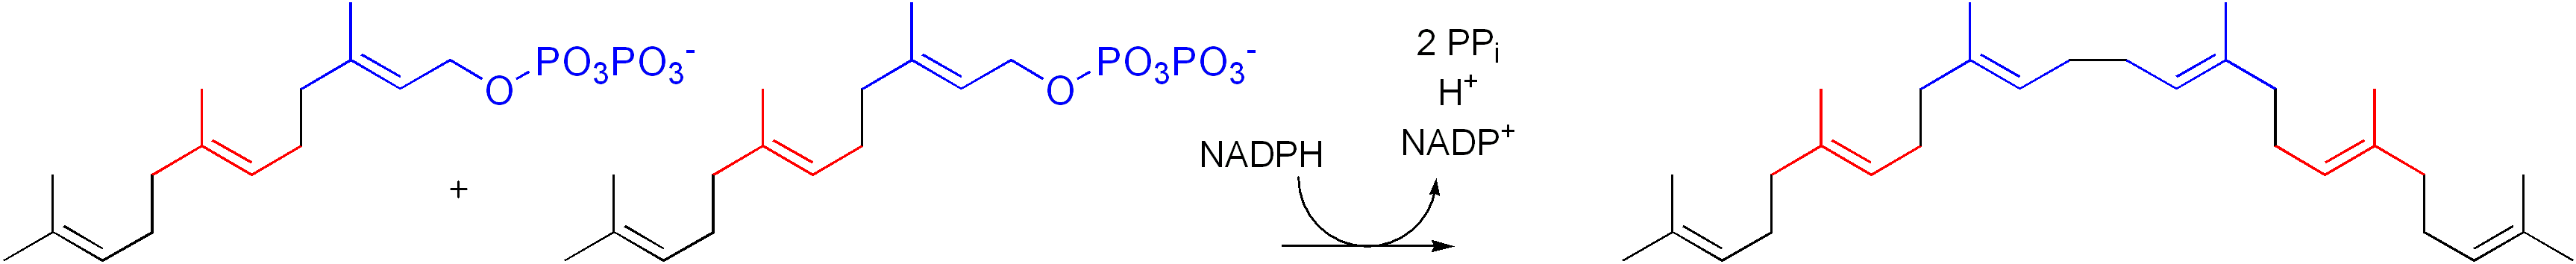 Cholesterol-Synthesis-Reaction10.png